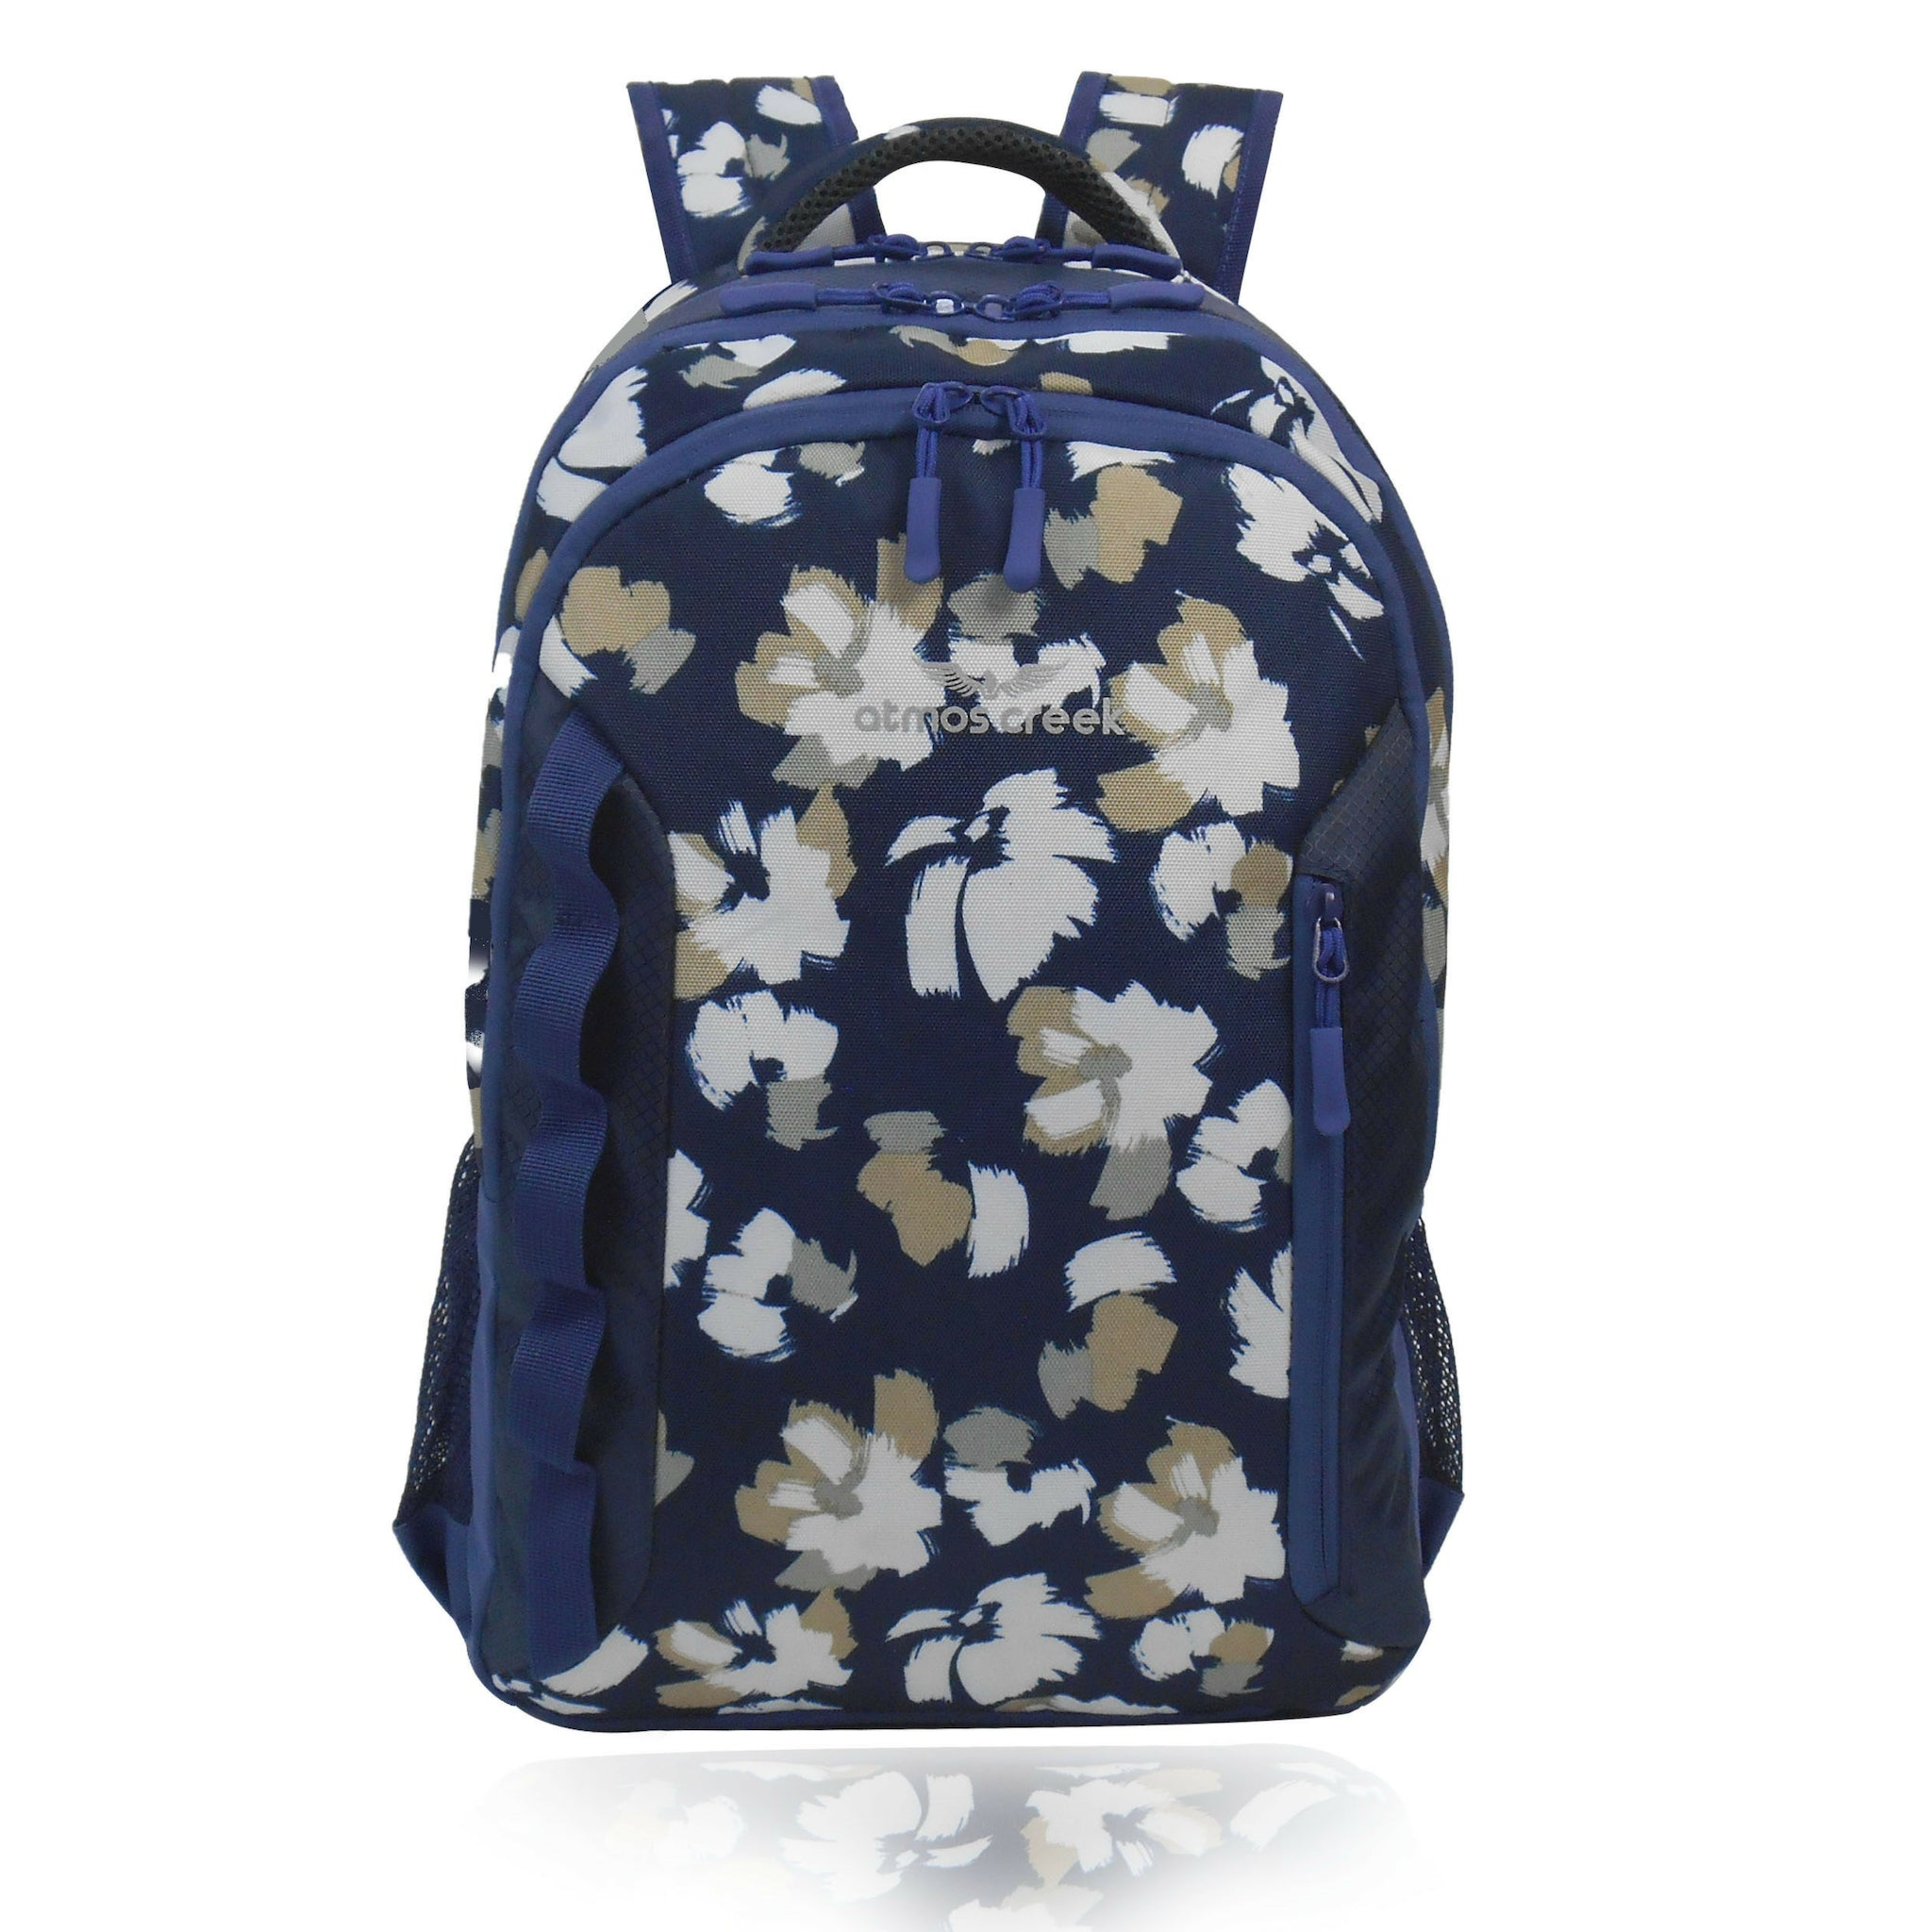 Atmos Creek FAM casual college floral backpack with laptop sleeve for girls 7767dd3516df7